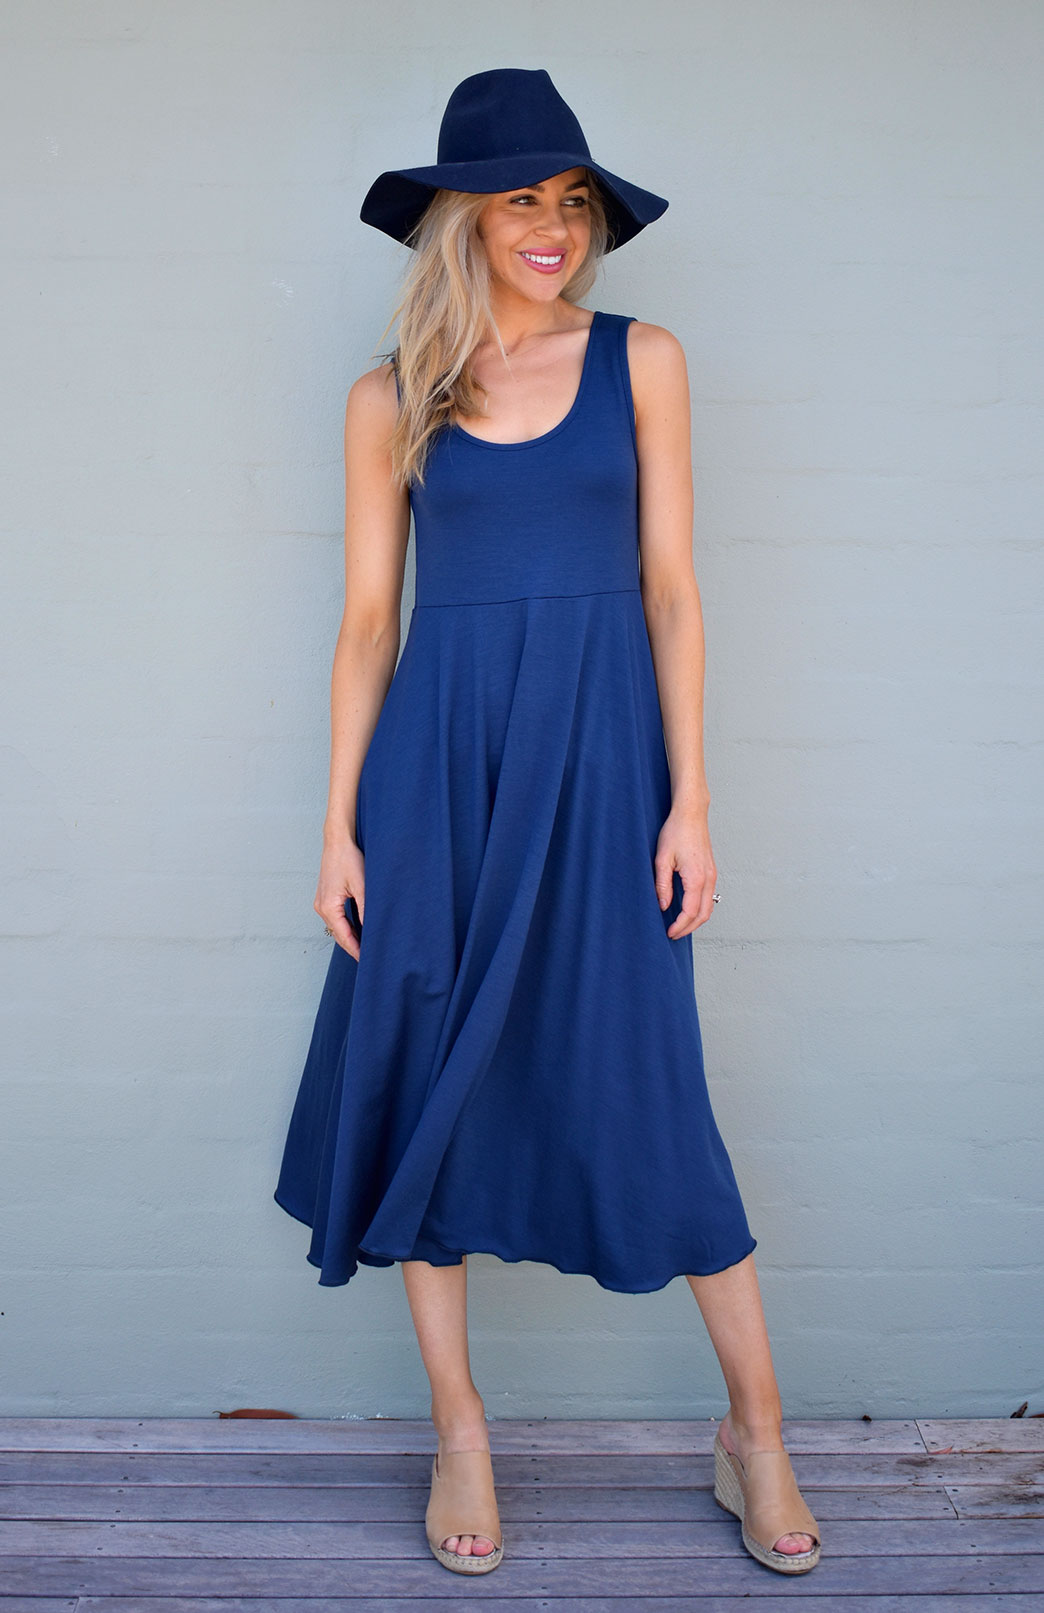 Fan Dress - Women's Merino Wool Indigo Blue Fan Dress with Empire Waistline and Flared Skirt - Smitten Merino Tasmania Australia